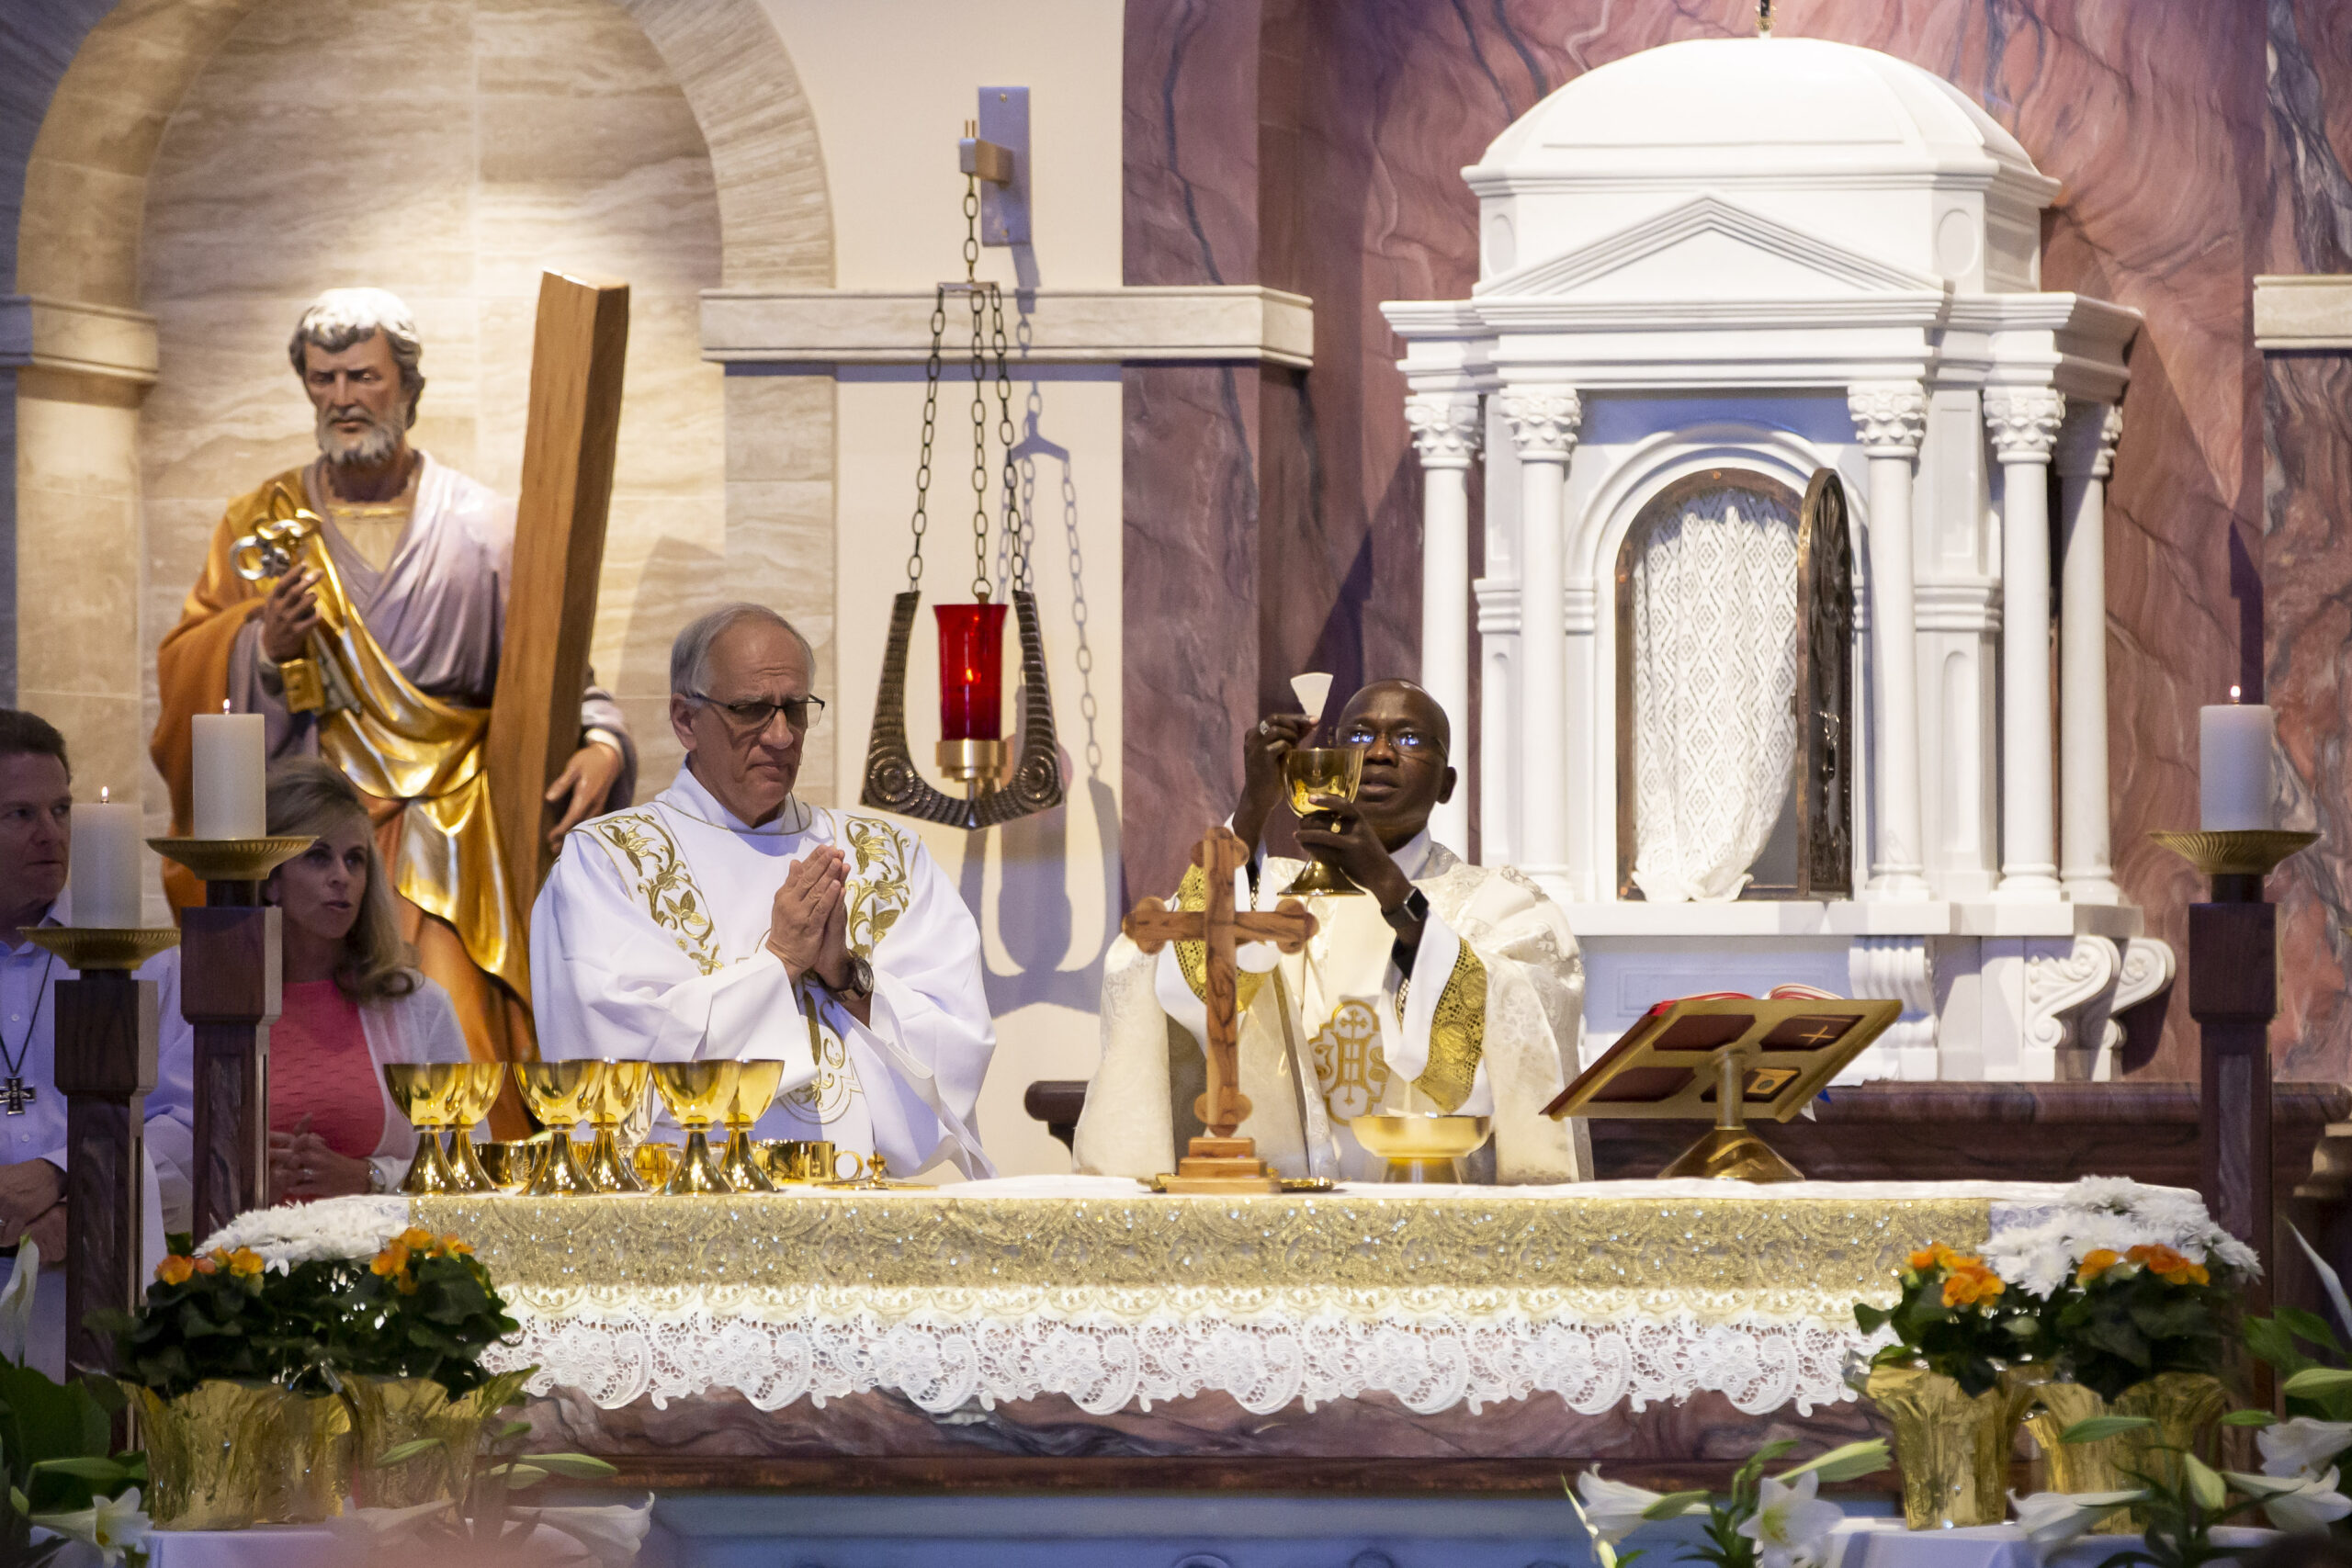 The Mass: Liturgy Of The Eucharist - The Roman Catholic intended for Daily Mass Intercessions 2021